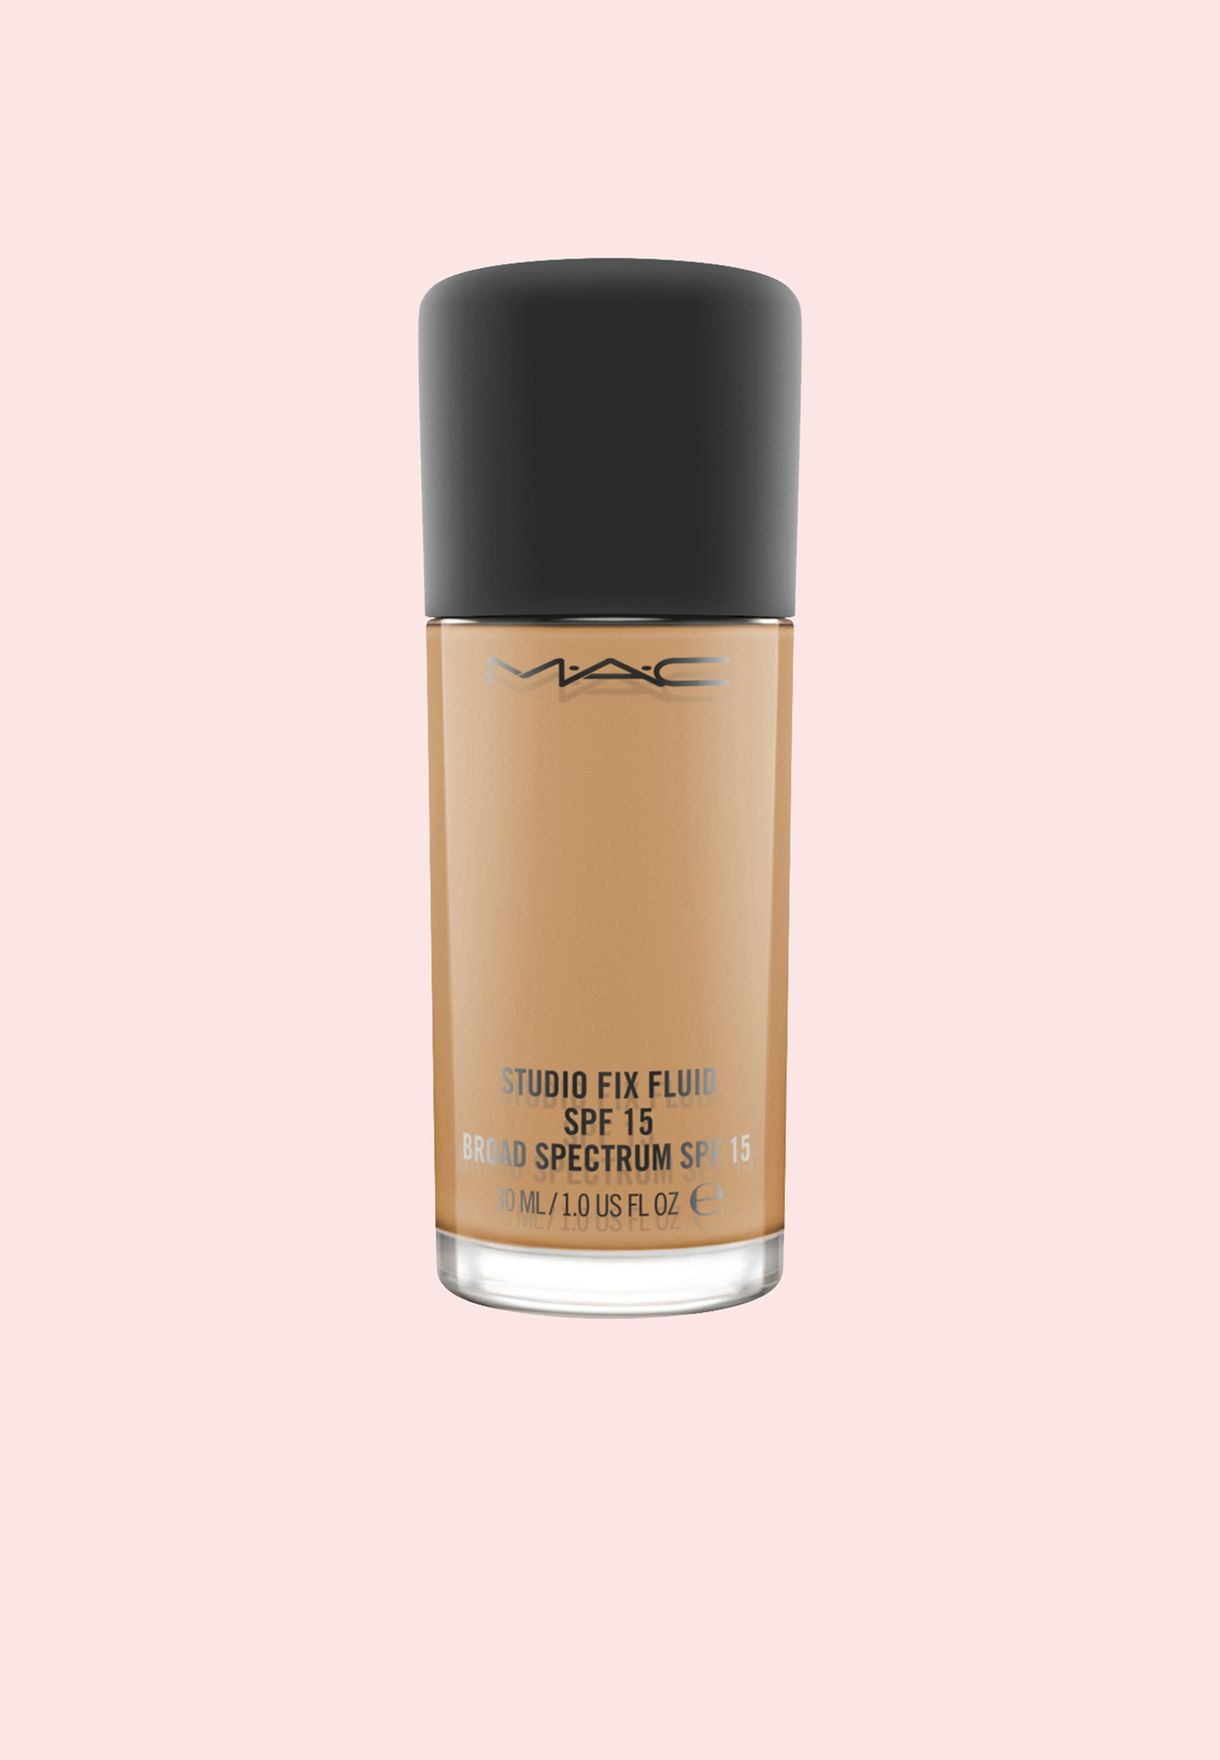 Studio Fix Fluid SPF 15 Foundation - NC45